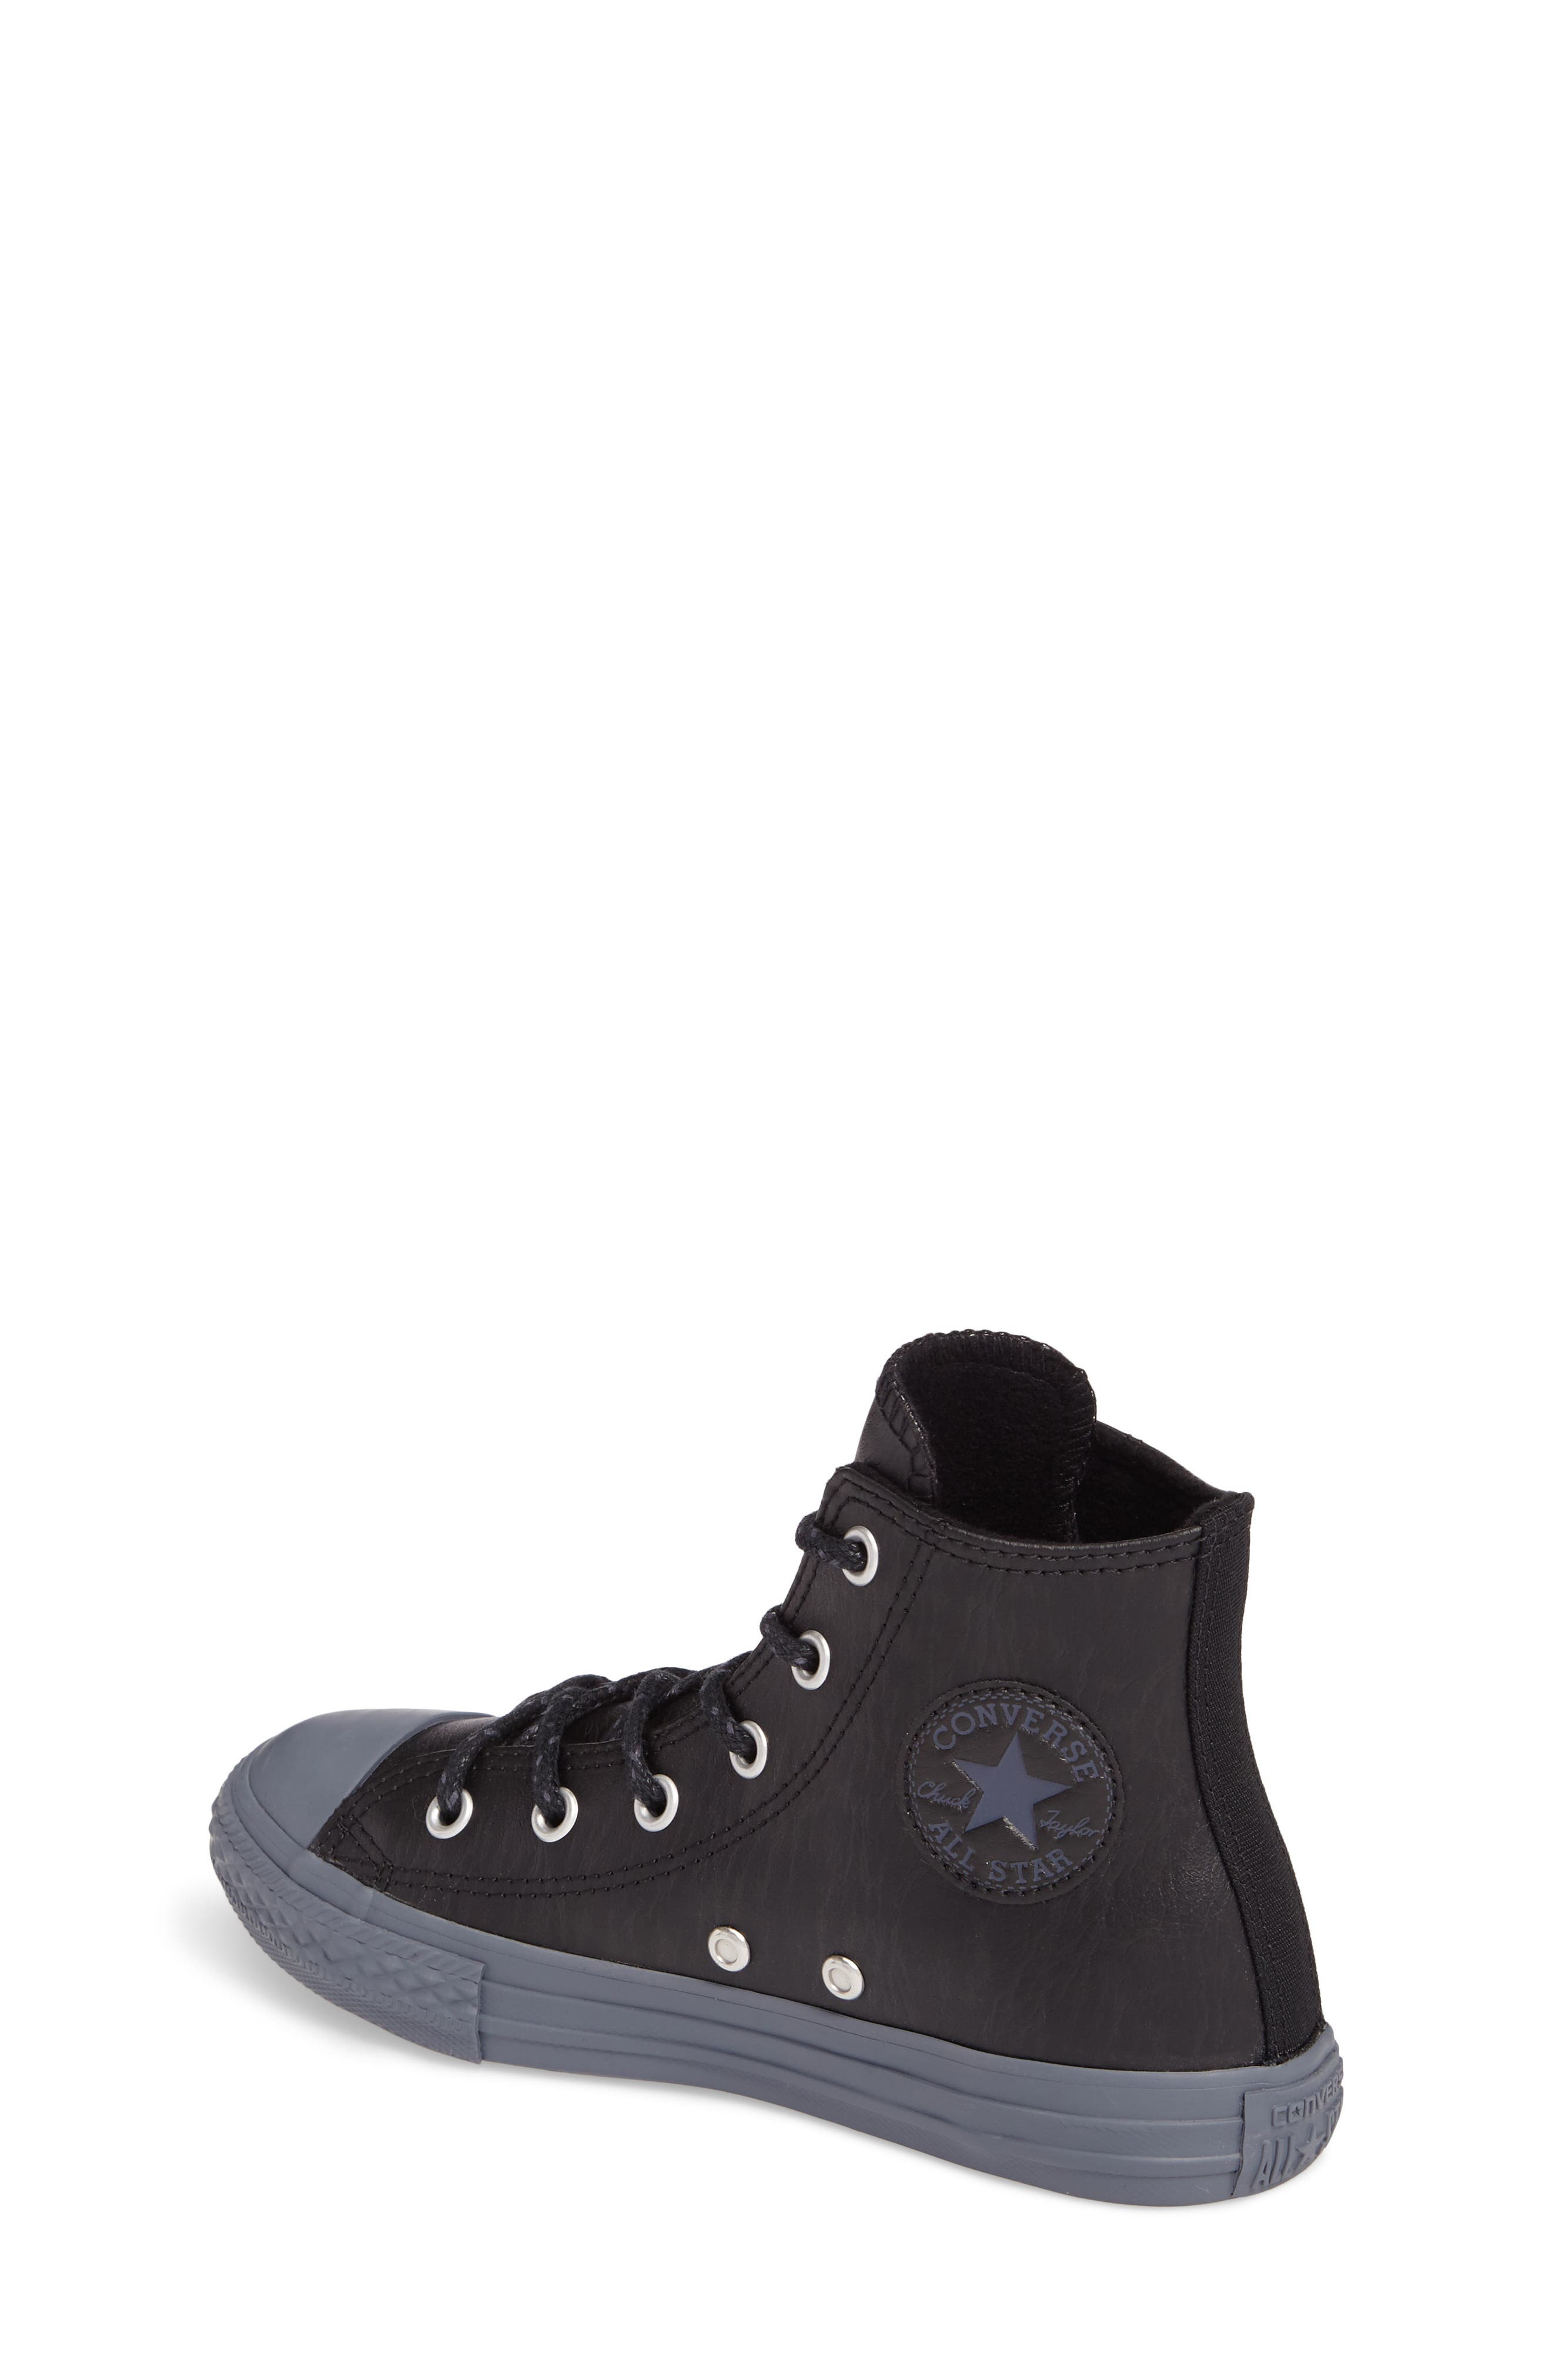 Chuck Taylor<sup>®</sup> All Star<sup>®</sup> Leather High Top Sneaker,                             Alternate thumbnail 2, color,                             001